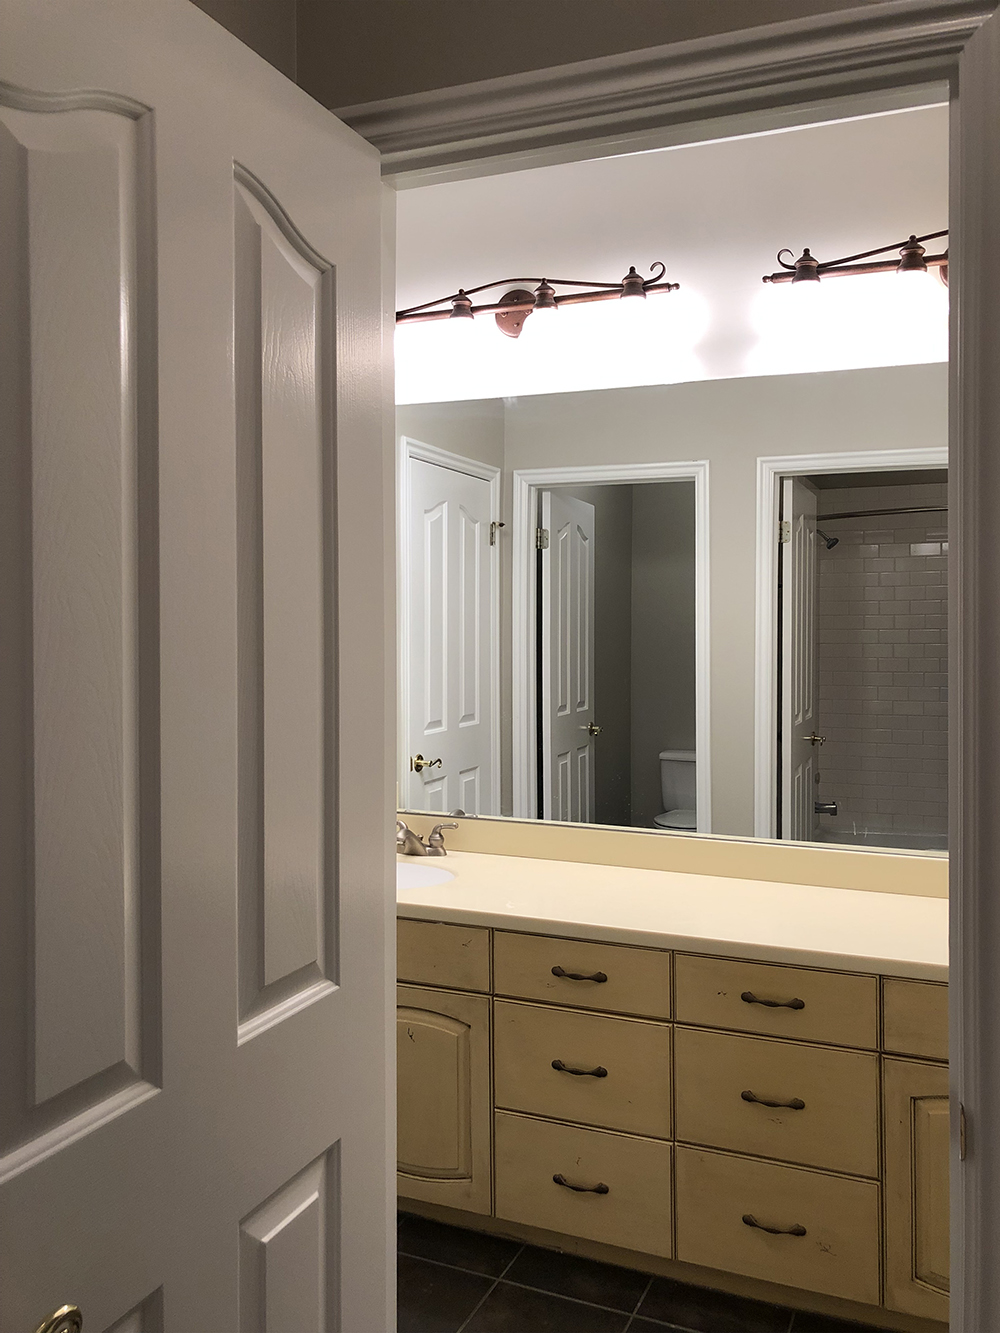 Our Guest Bath Design Plan & Before Images - roomfortuesday.com